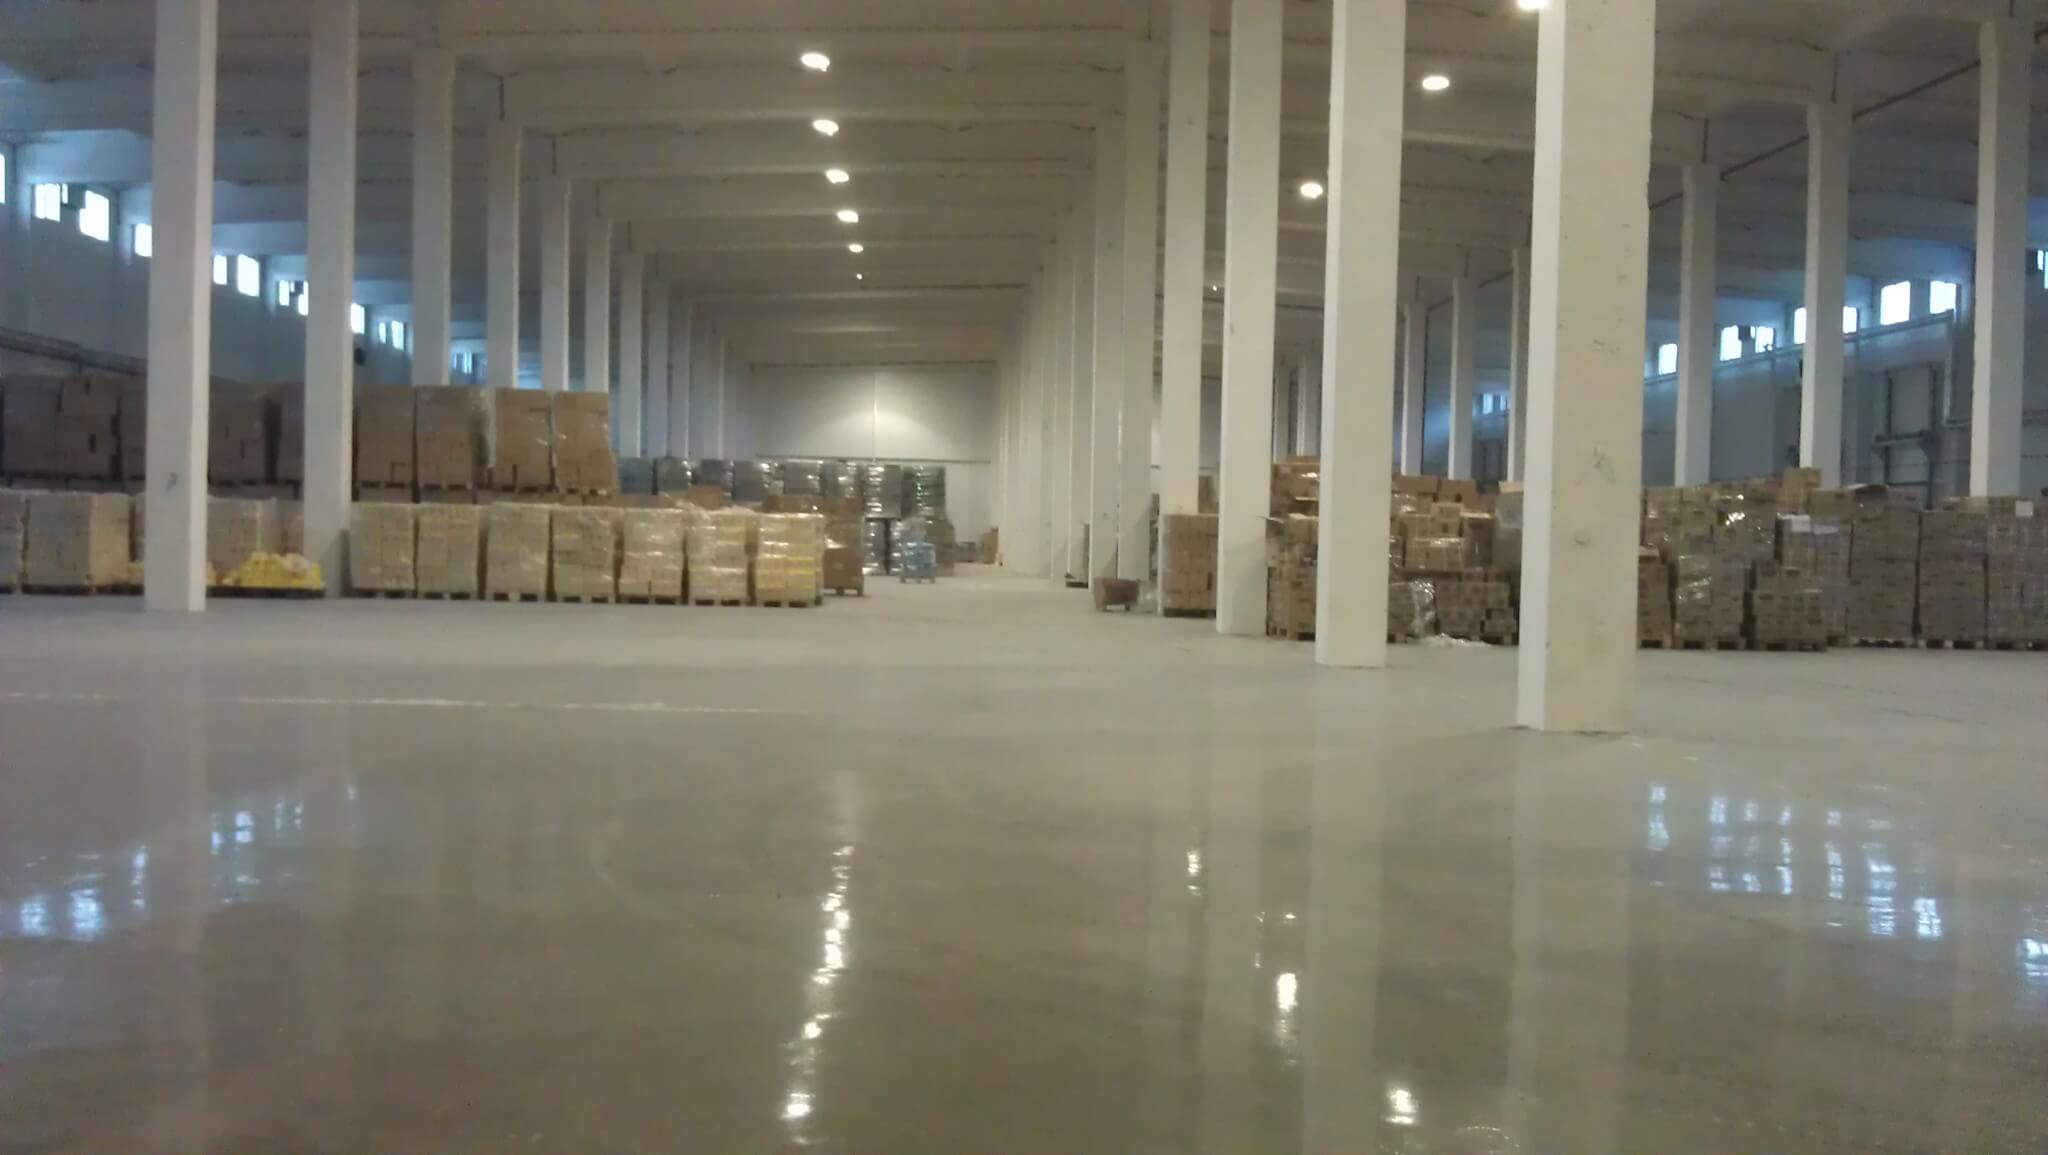 Spotless surface of the warehouse floor